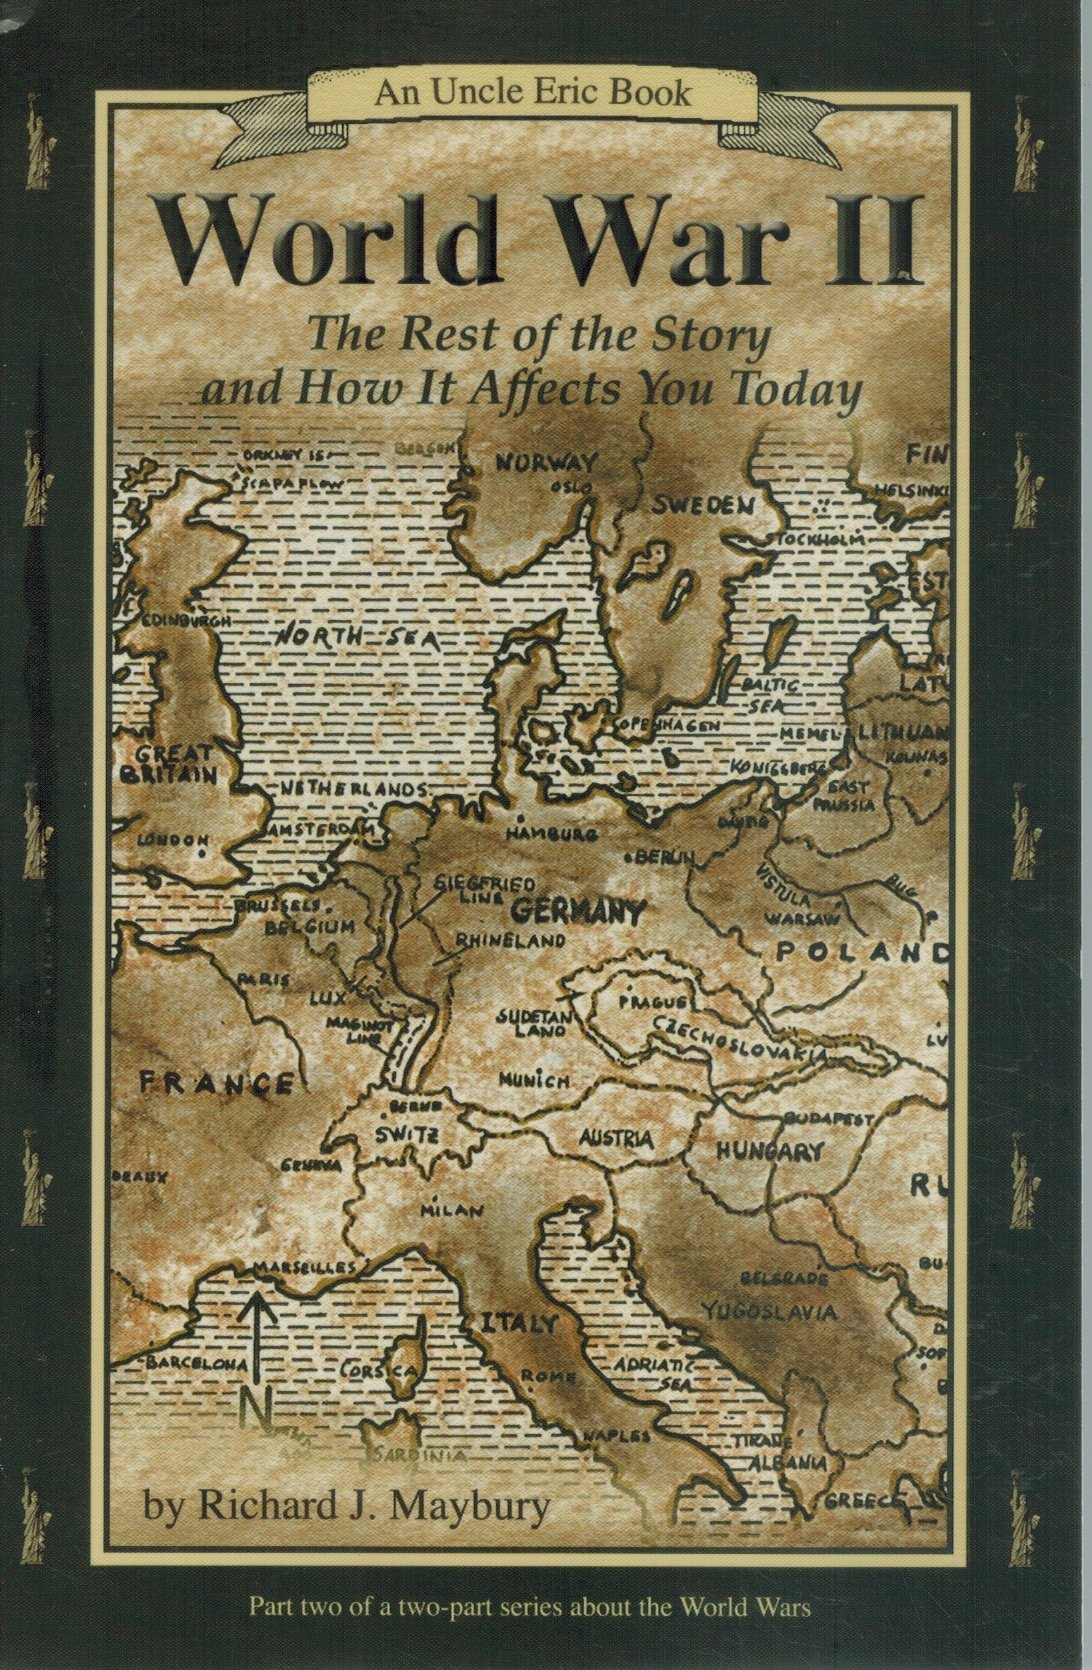 WORLD WAR II The Rest of the Story and How it Affects You Today, 1930 to  September 11, 2001  by Maybury, Richard J. & Jane A. Williams